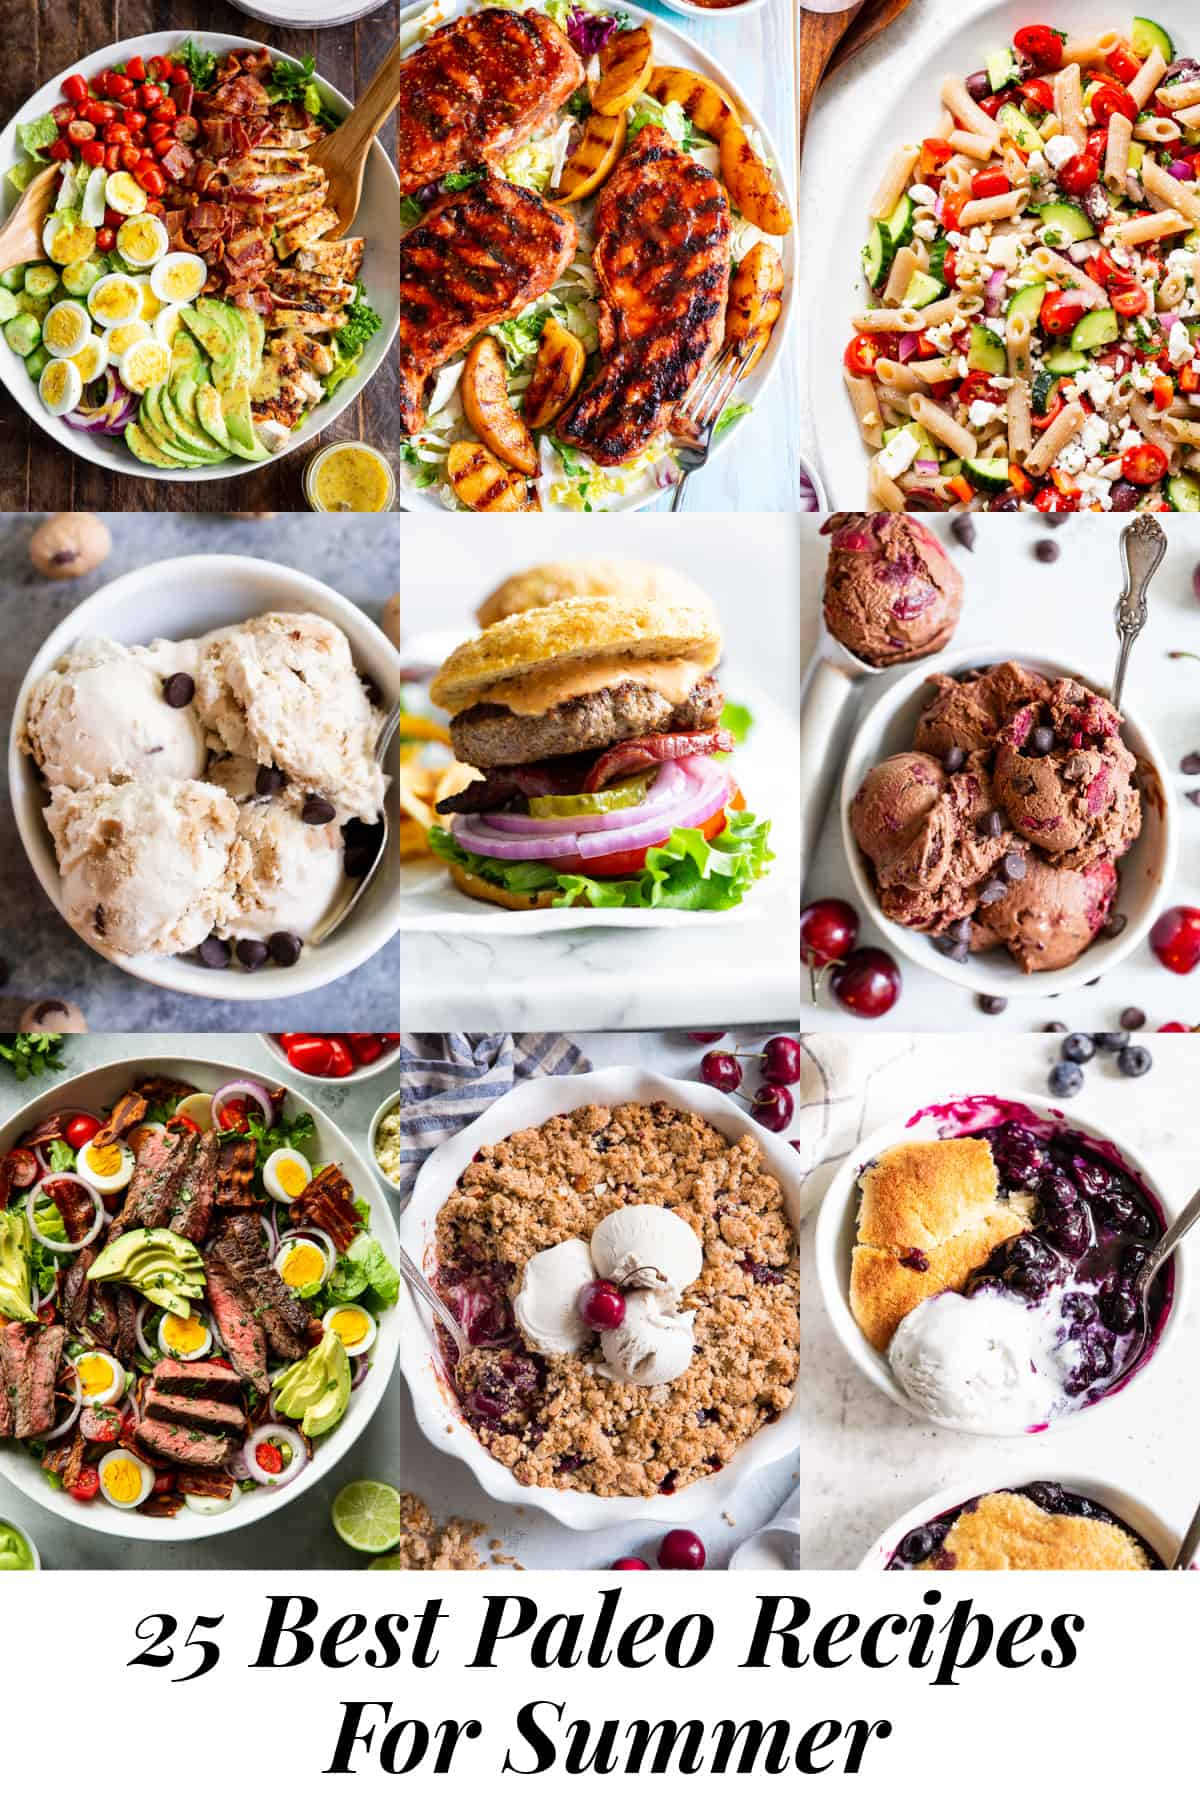 It's all your favorite top rated meals and dessert recipes for Summer, Paleo style! From grilling recipes to salads, to ice cream and the best crisps and cobblers, we've got your cravings covered! All of these delicious paleo recipes for summer are gluten free, grain free, dairy free and refined sugar free. #paleo #cleaneating